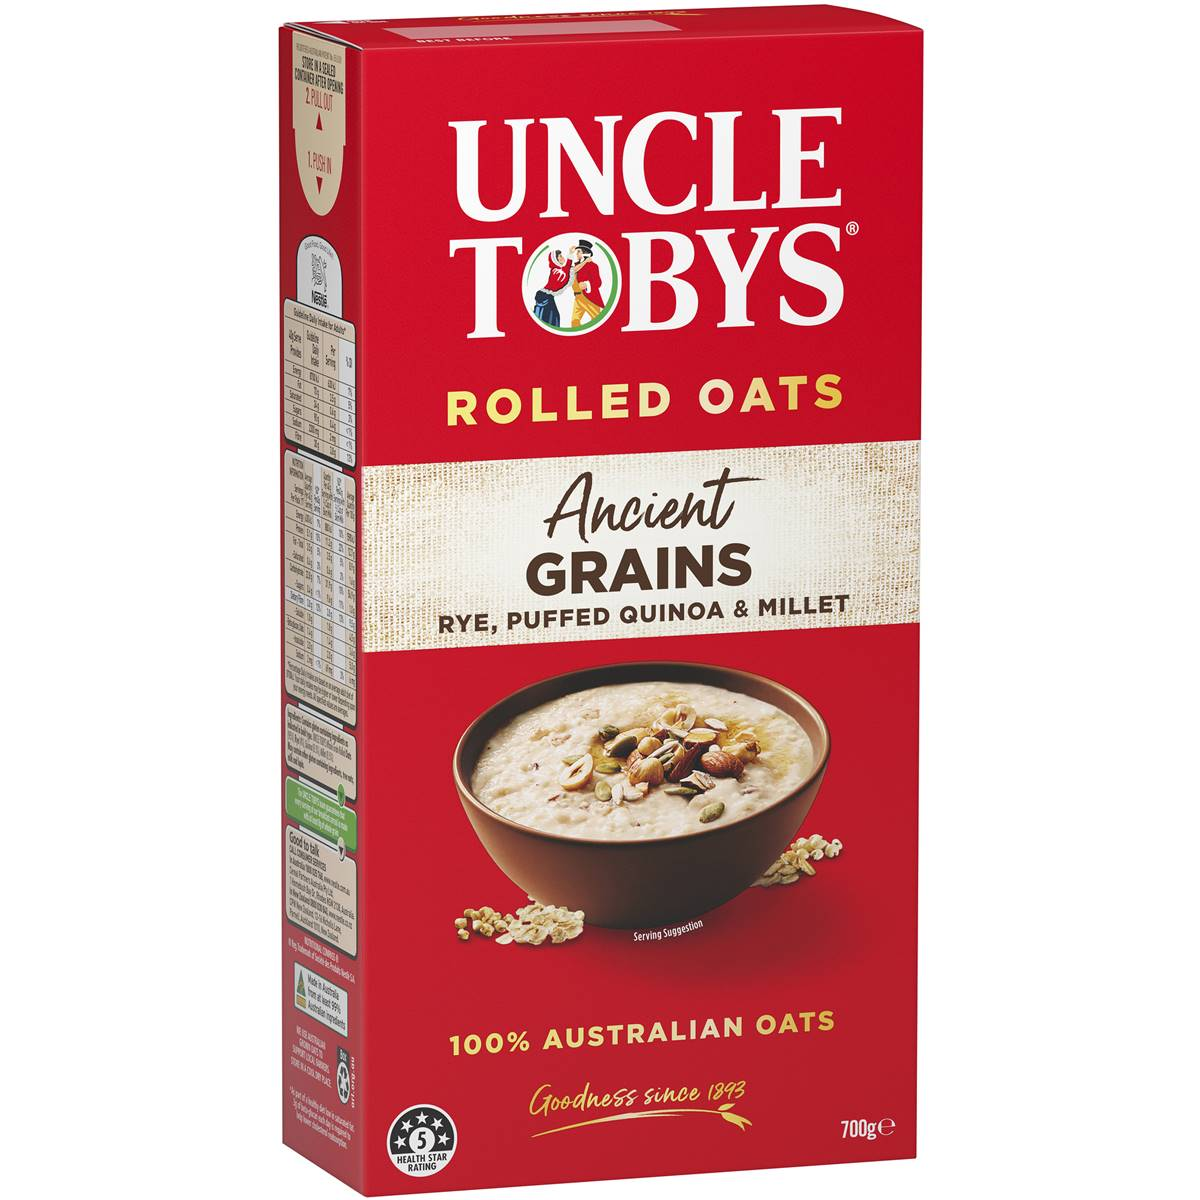 hight resolution of uncle tobys ancient grains oats image